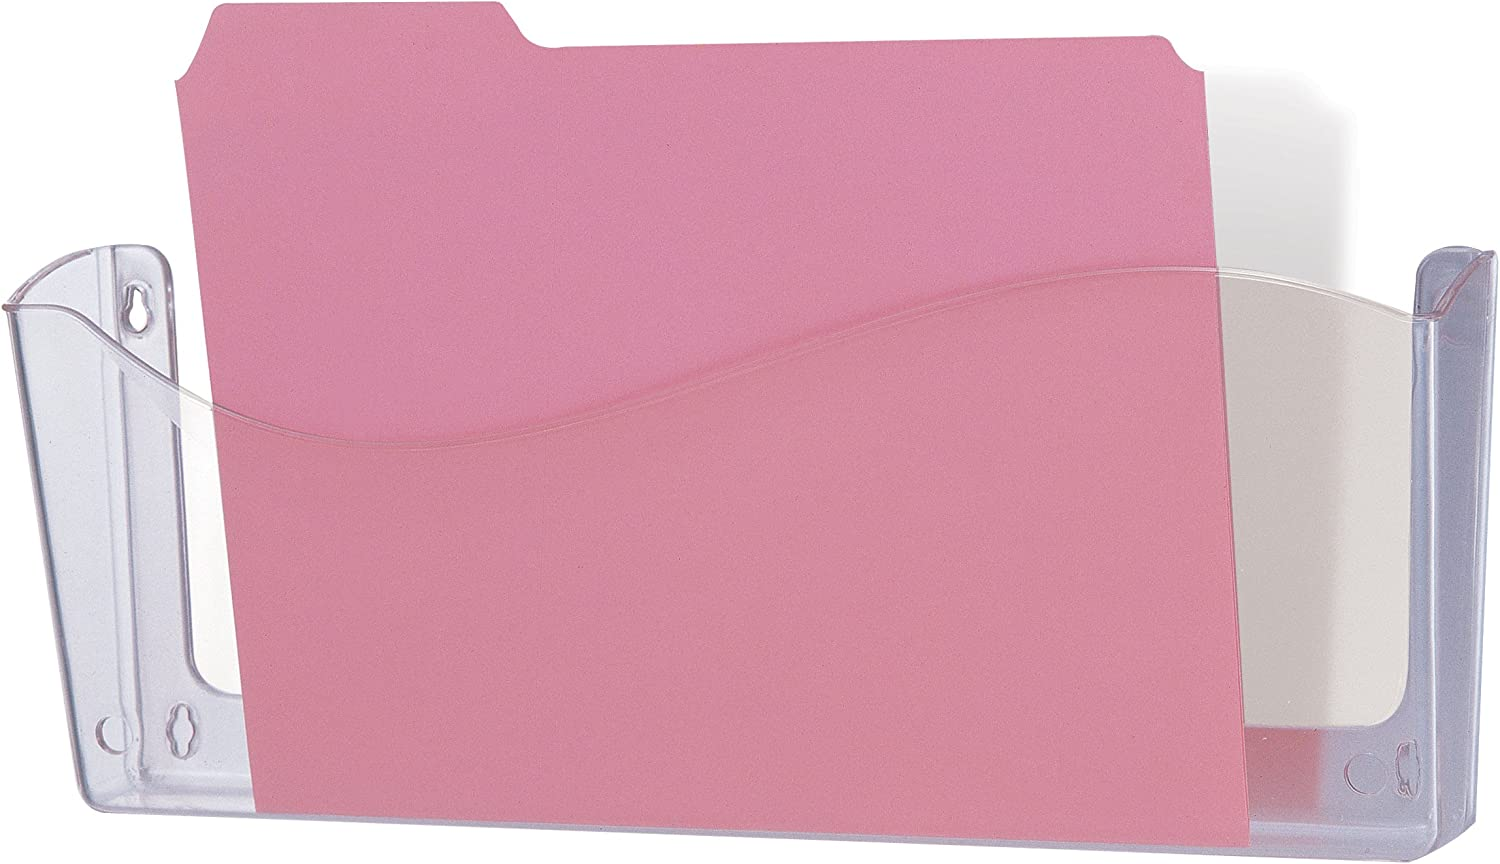 Officemate Unbreakable Wall File, Legal Size, Clear (21634)